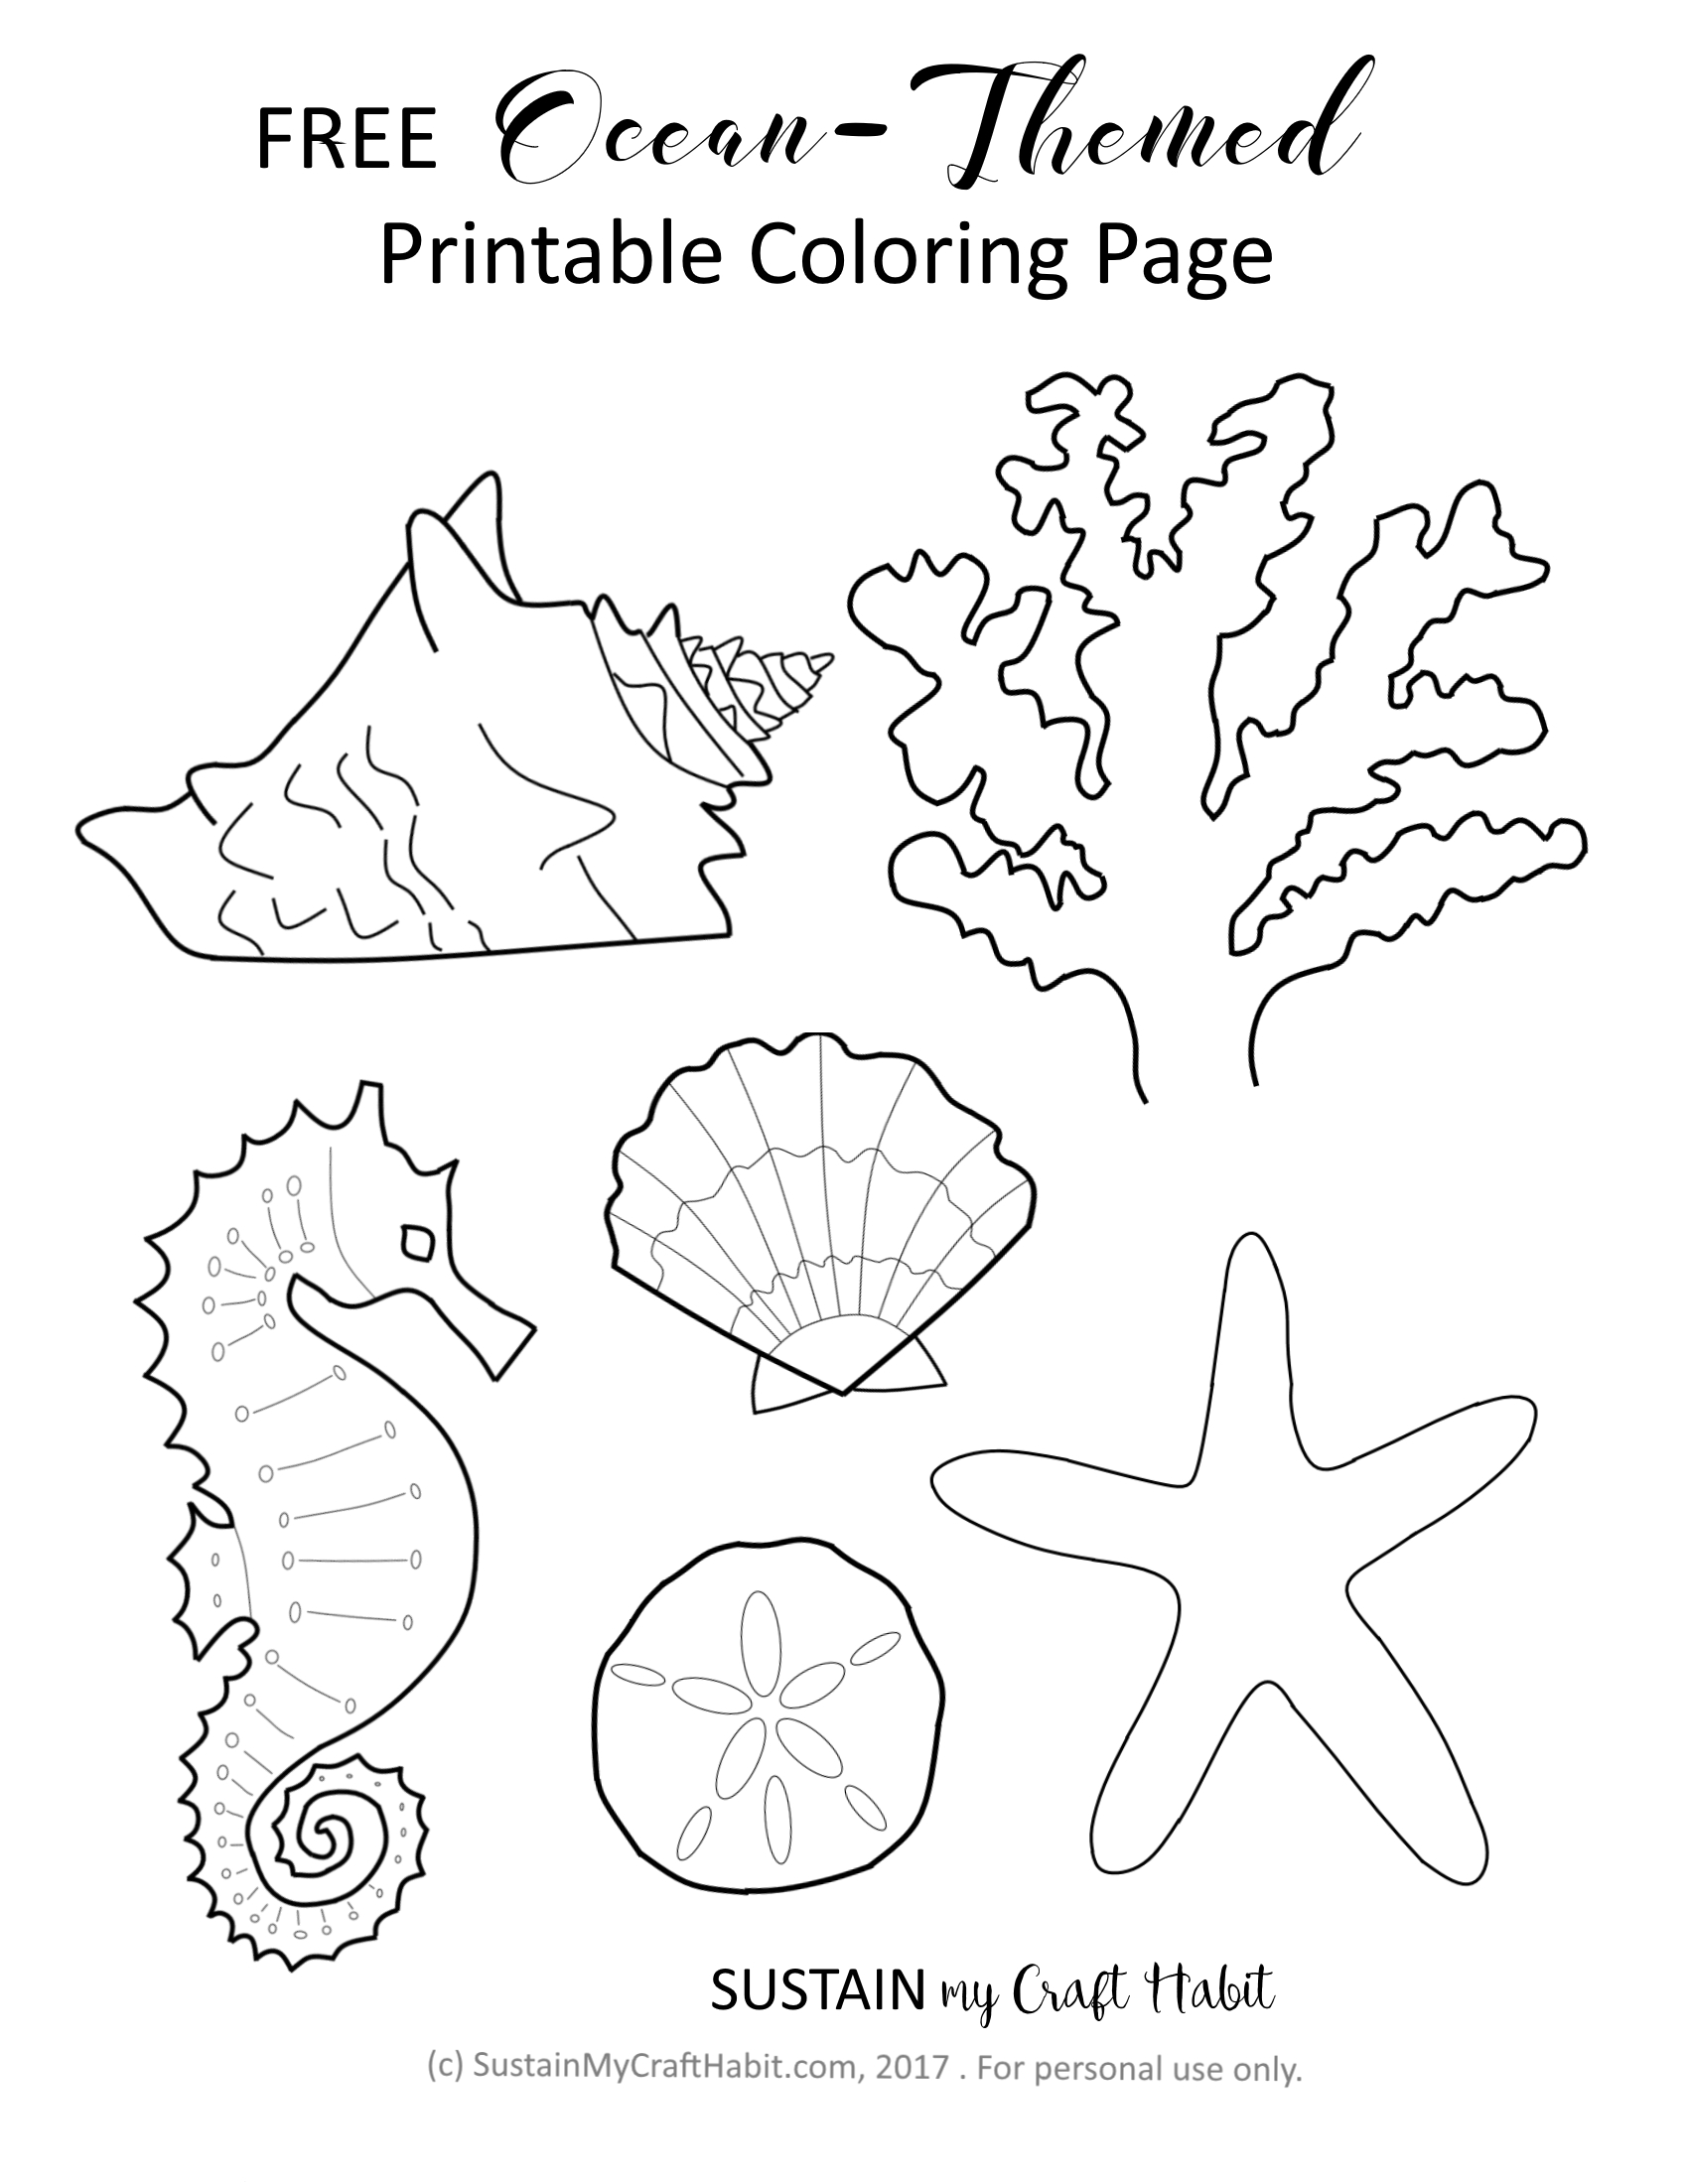 Free Ocean Themed Coloring Page Printable Sustain My